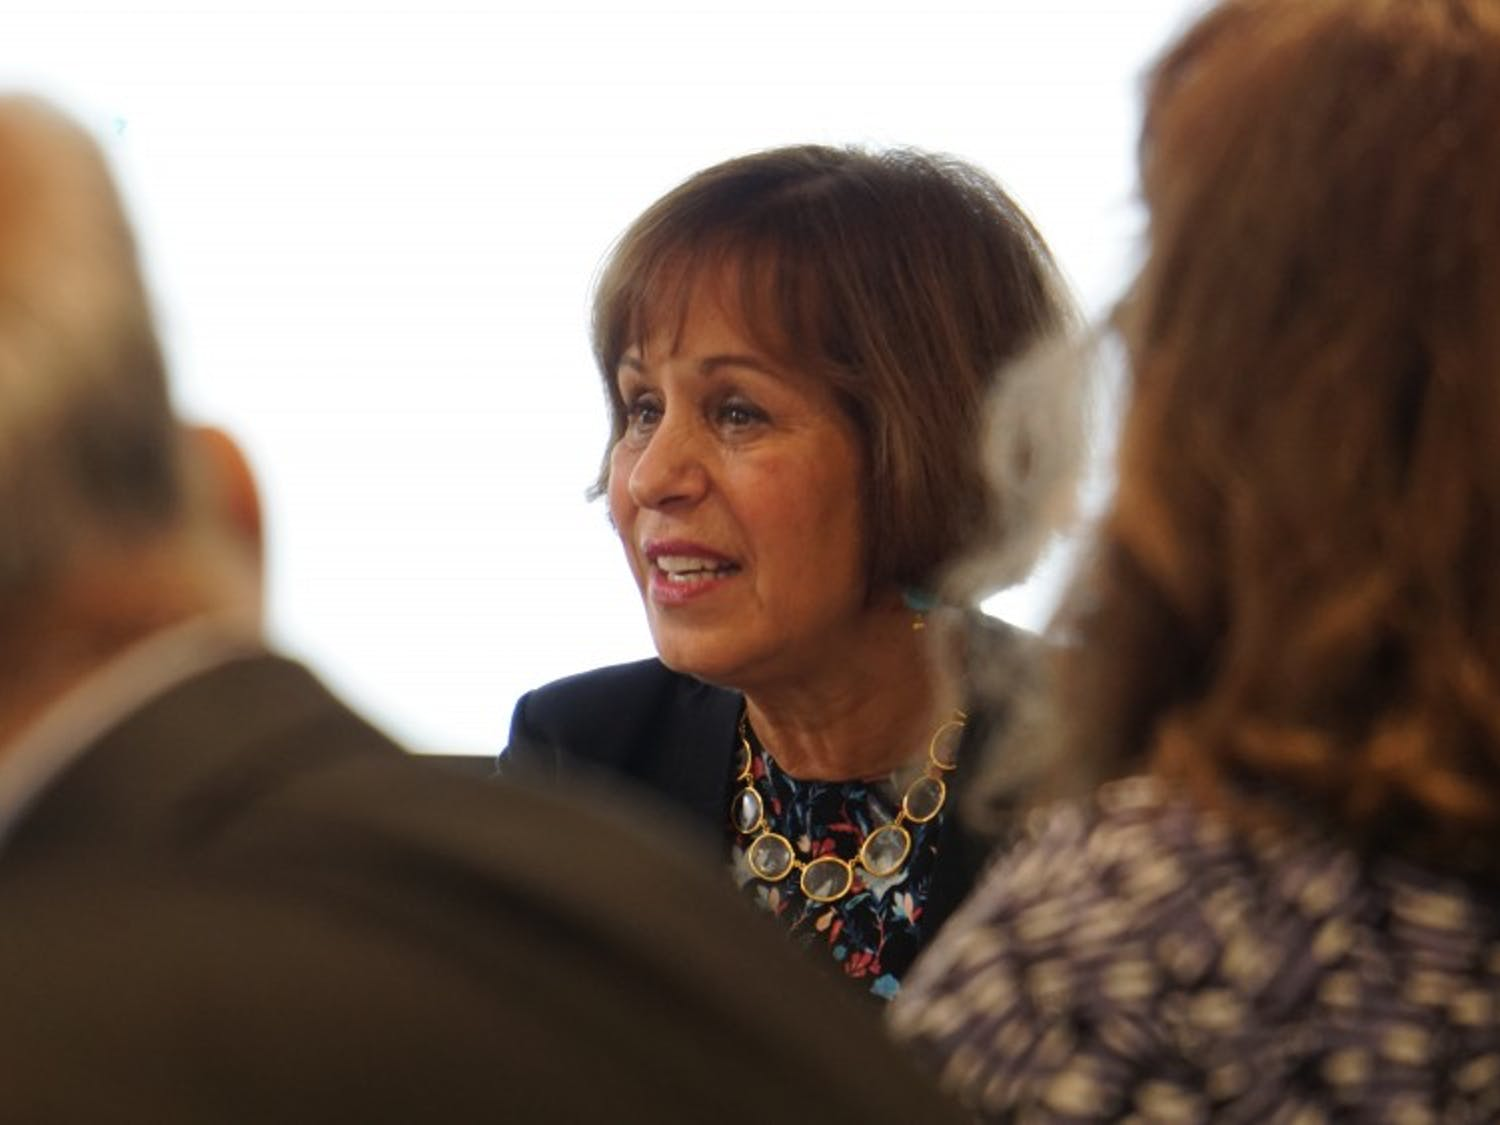 Chancellor Carol Folt during an executive committee meeting on Monday, Sept. 24.